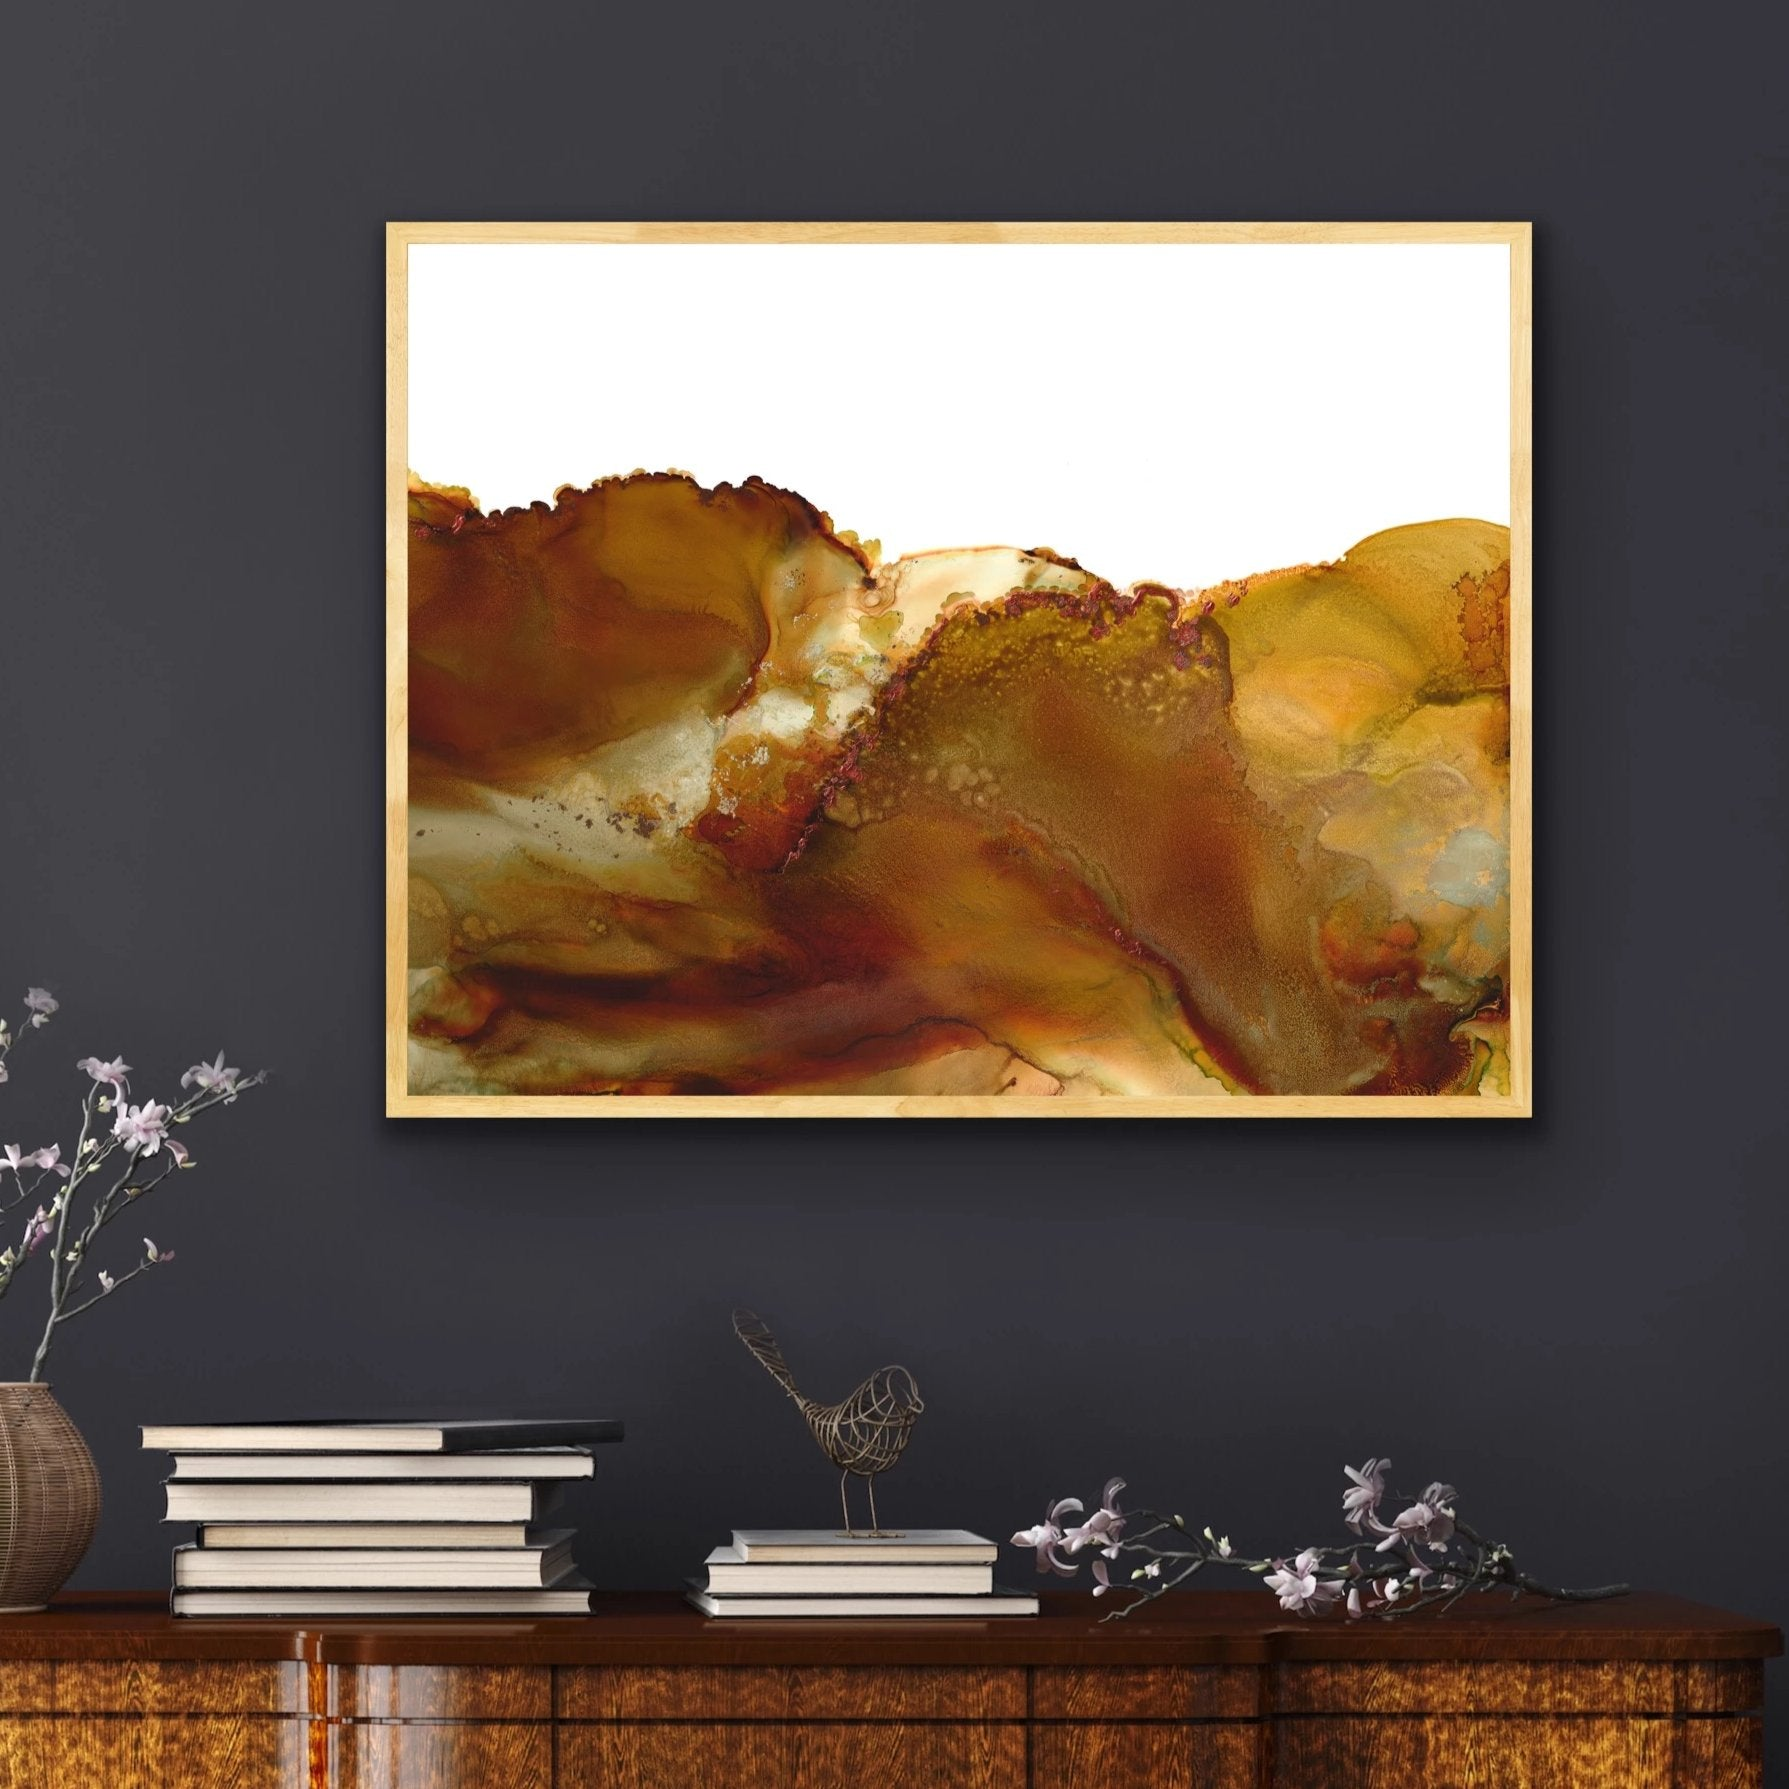 Sediments - Giclee Print in caramel, brown, rust